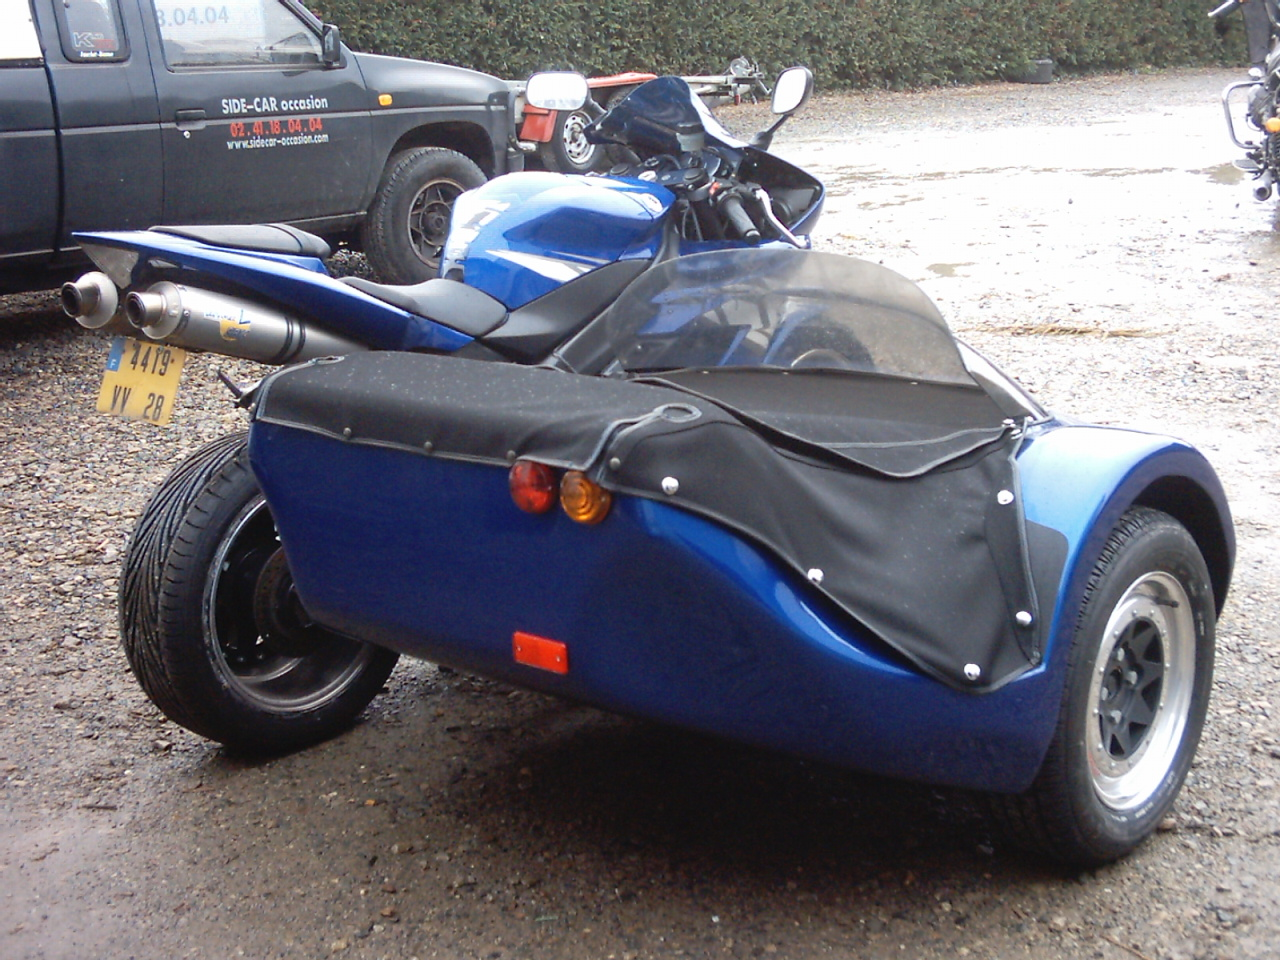 sidecar occasion - 1000 R1 NEPTUNE 7